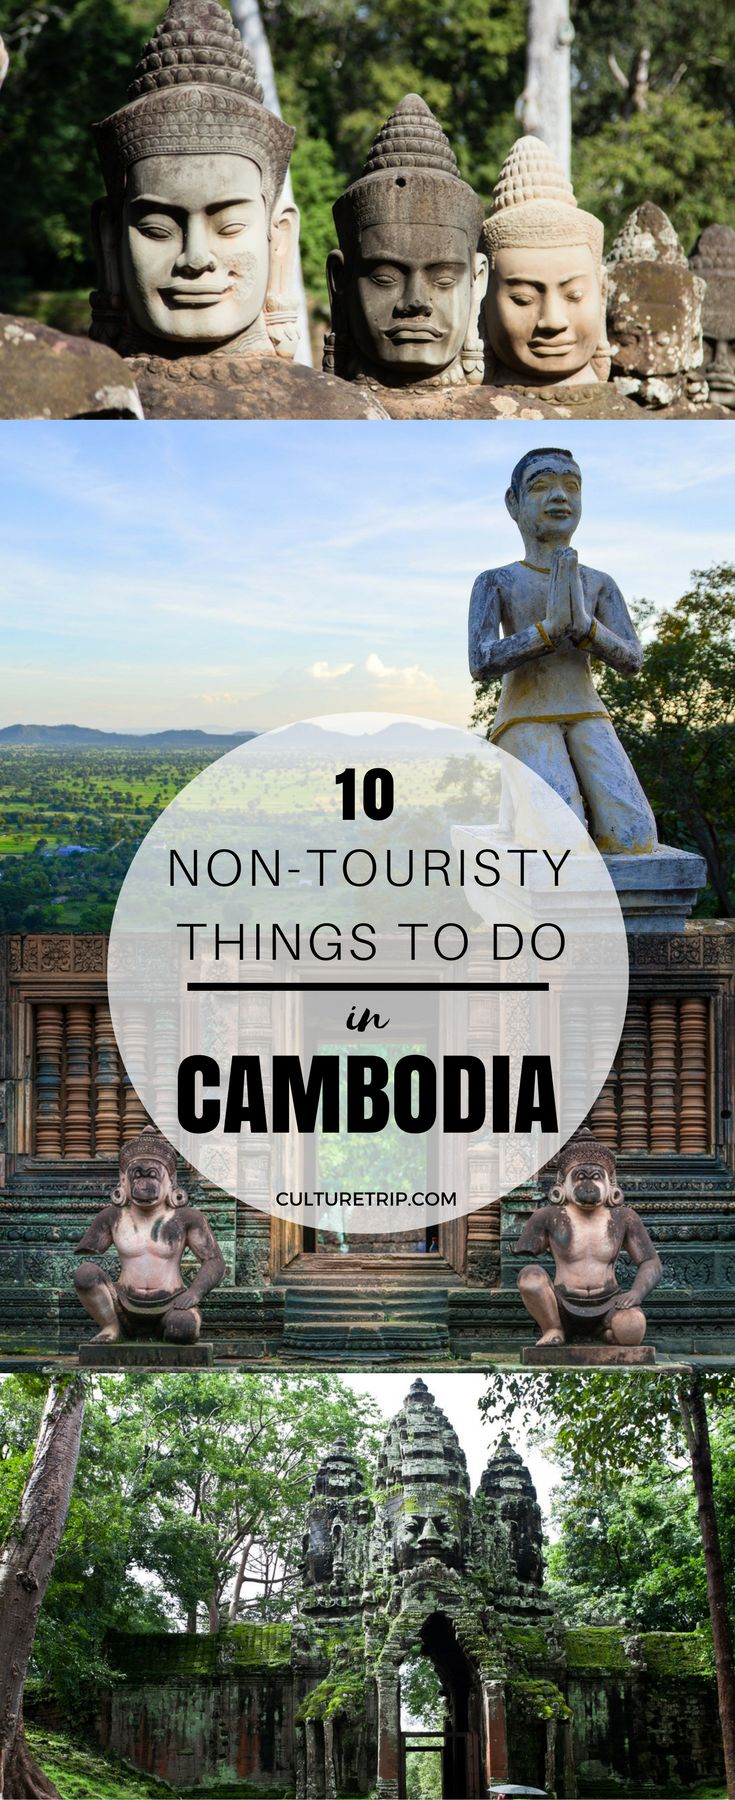 10 Non-Touristy Experiences You Can Only Have in Cambodia|Pinterest: theculturetrip